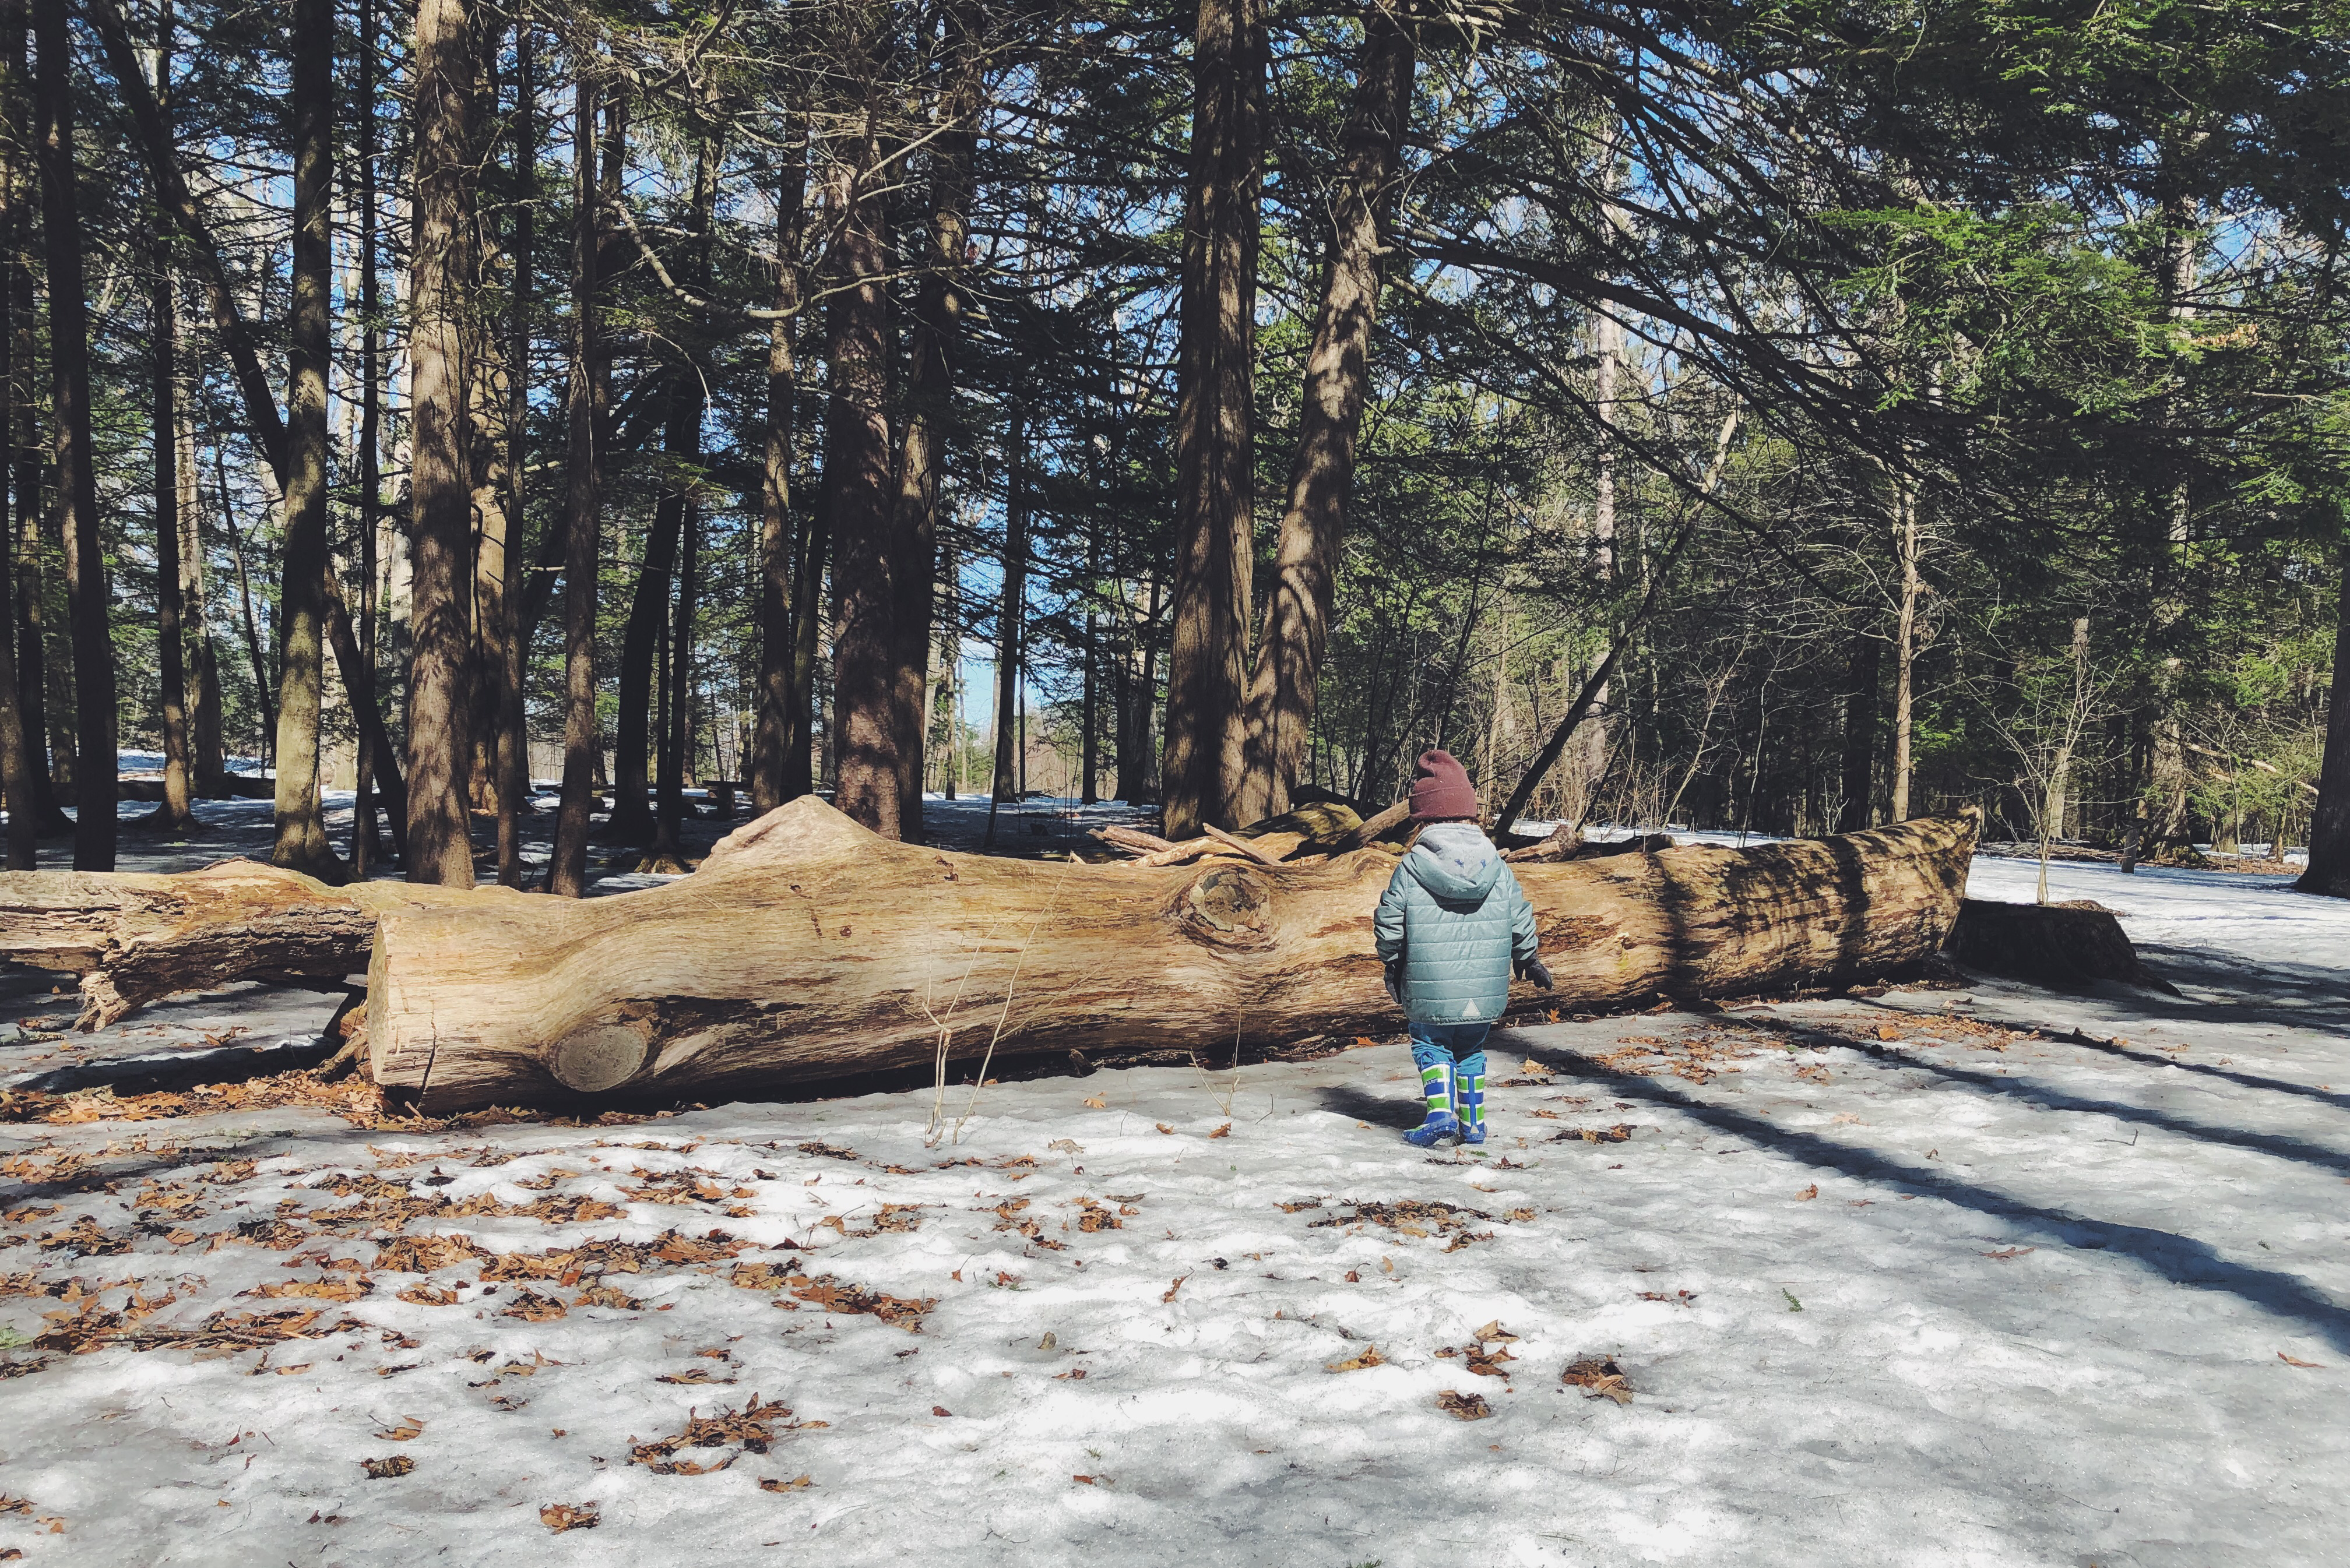 Child in a winter coat walking towards a fallen log in the woods.